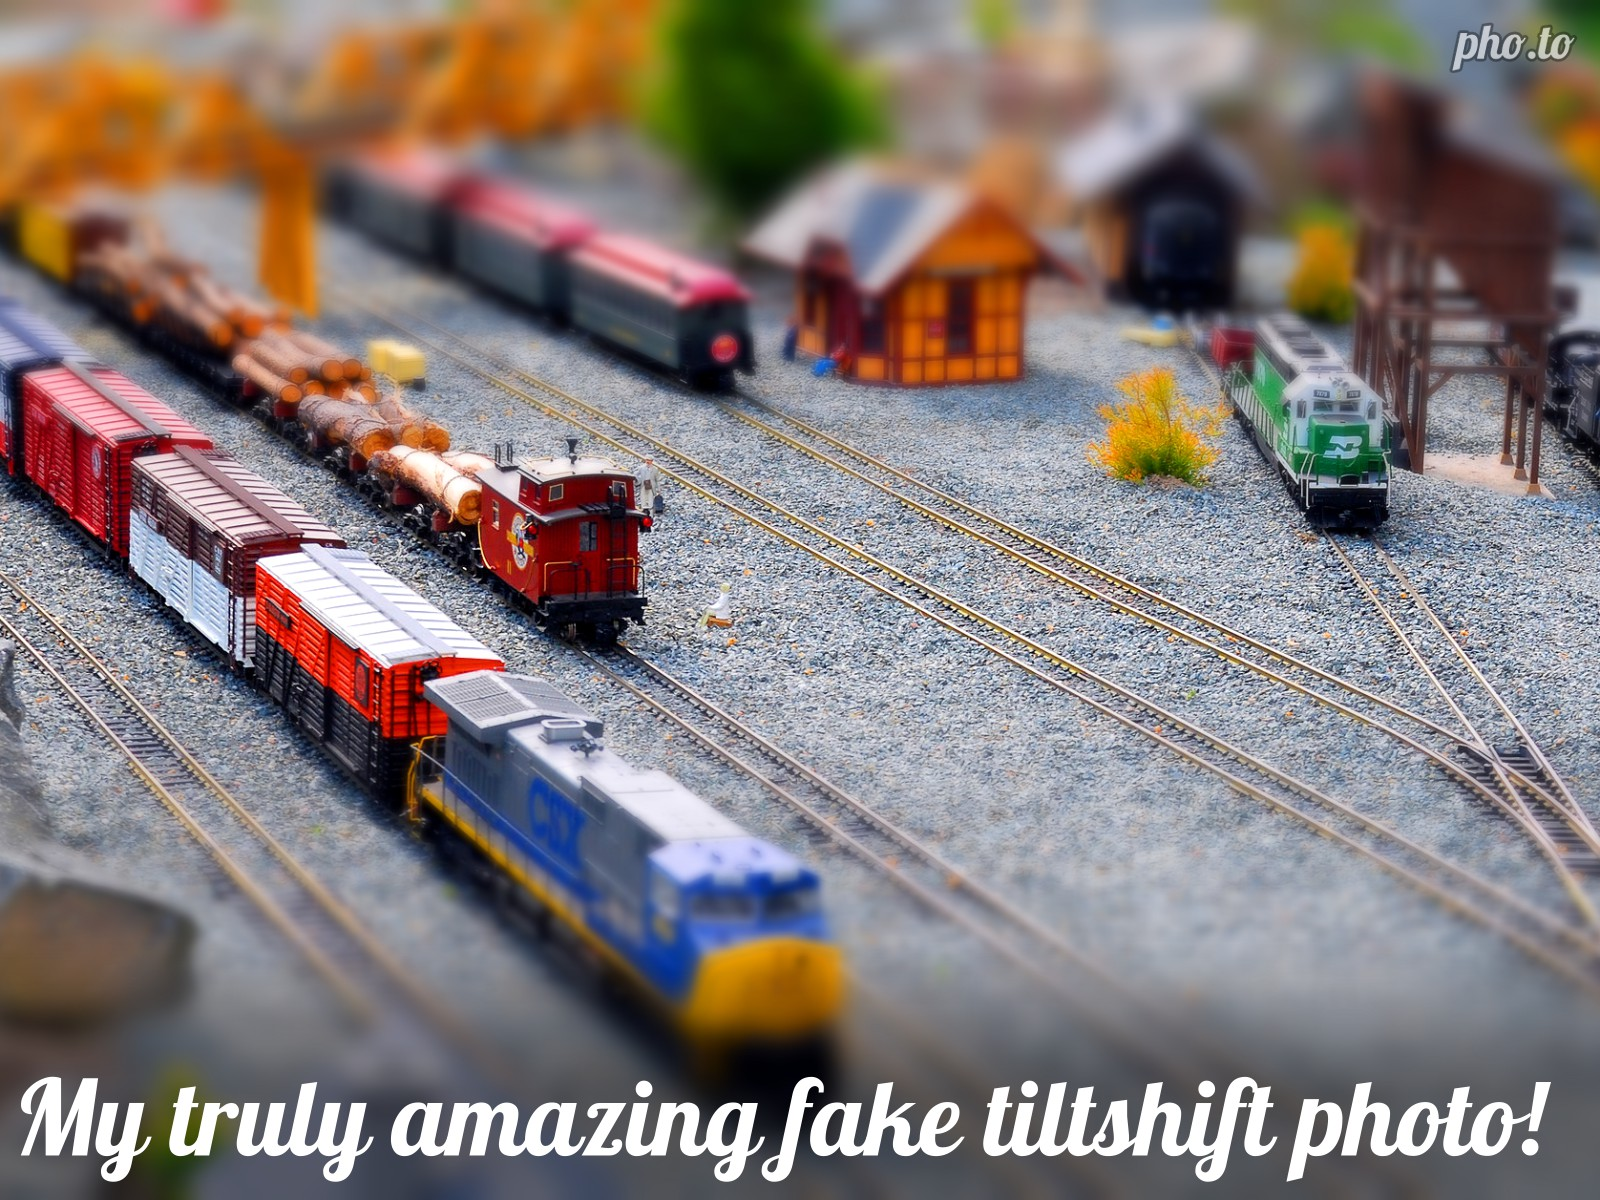 Tilt-shift effect is added to the view of   moving trains on the railroad